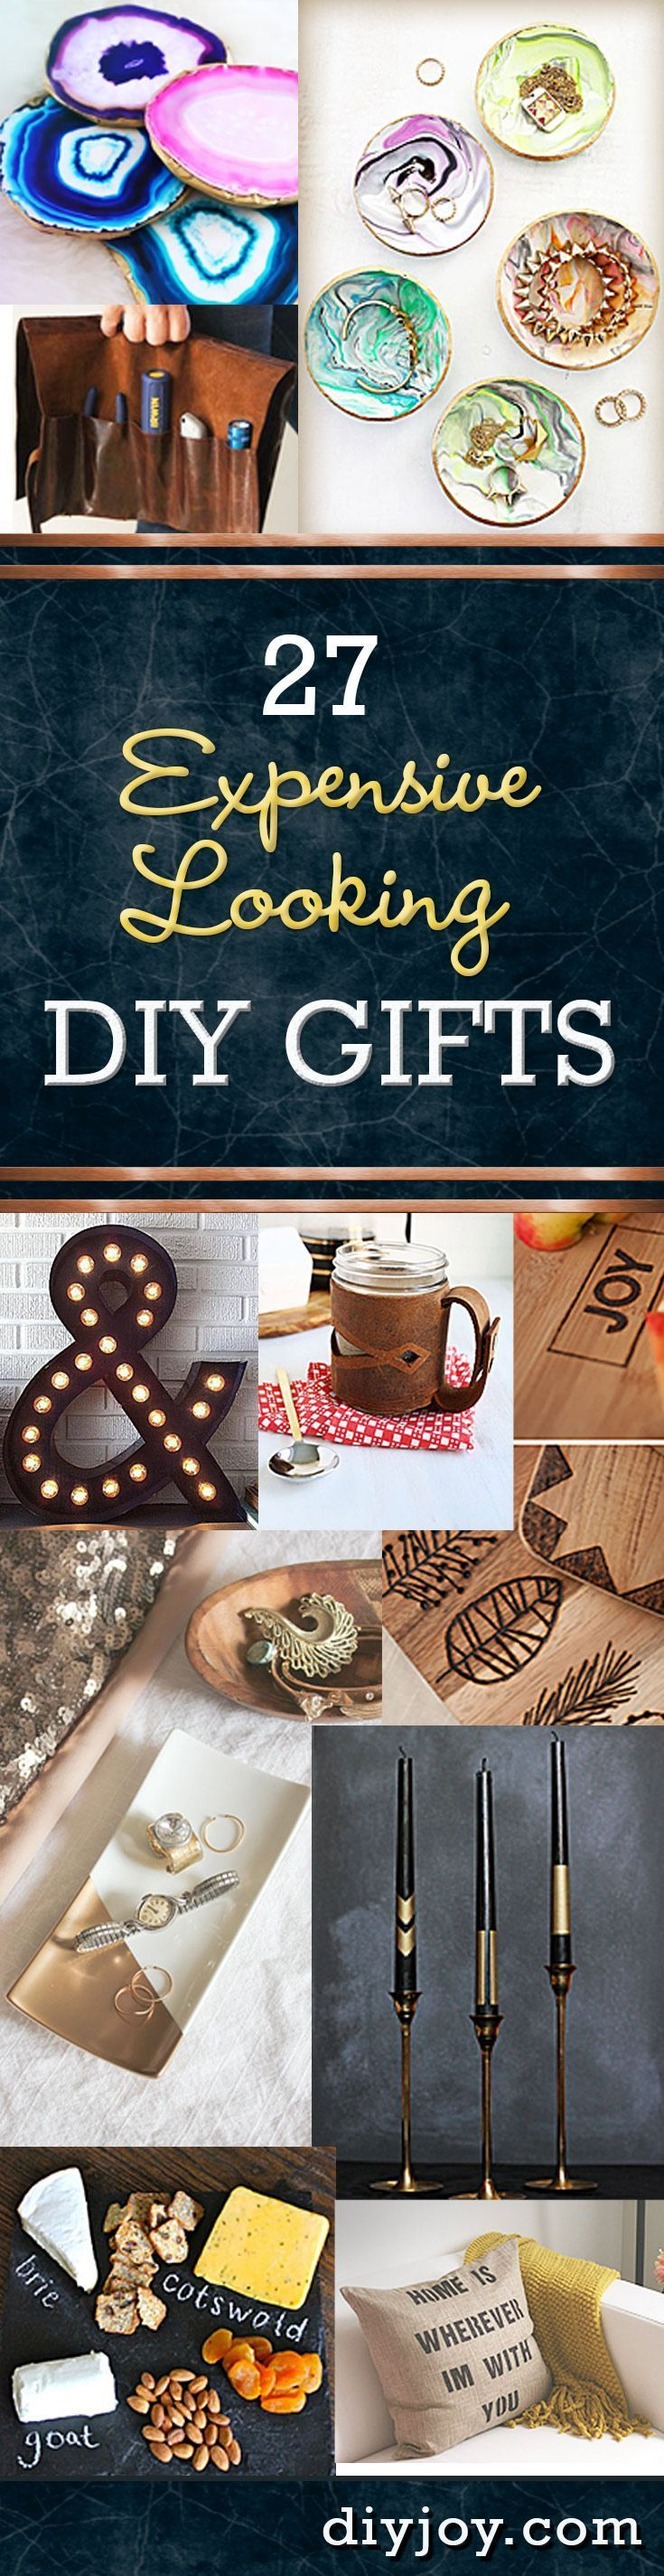 DIY Gifts and Cool Crafts and Projects that Make Cool DIY Gift Ideas CHEAP!